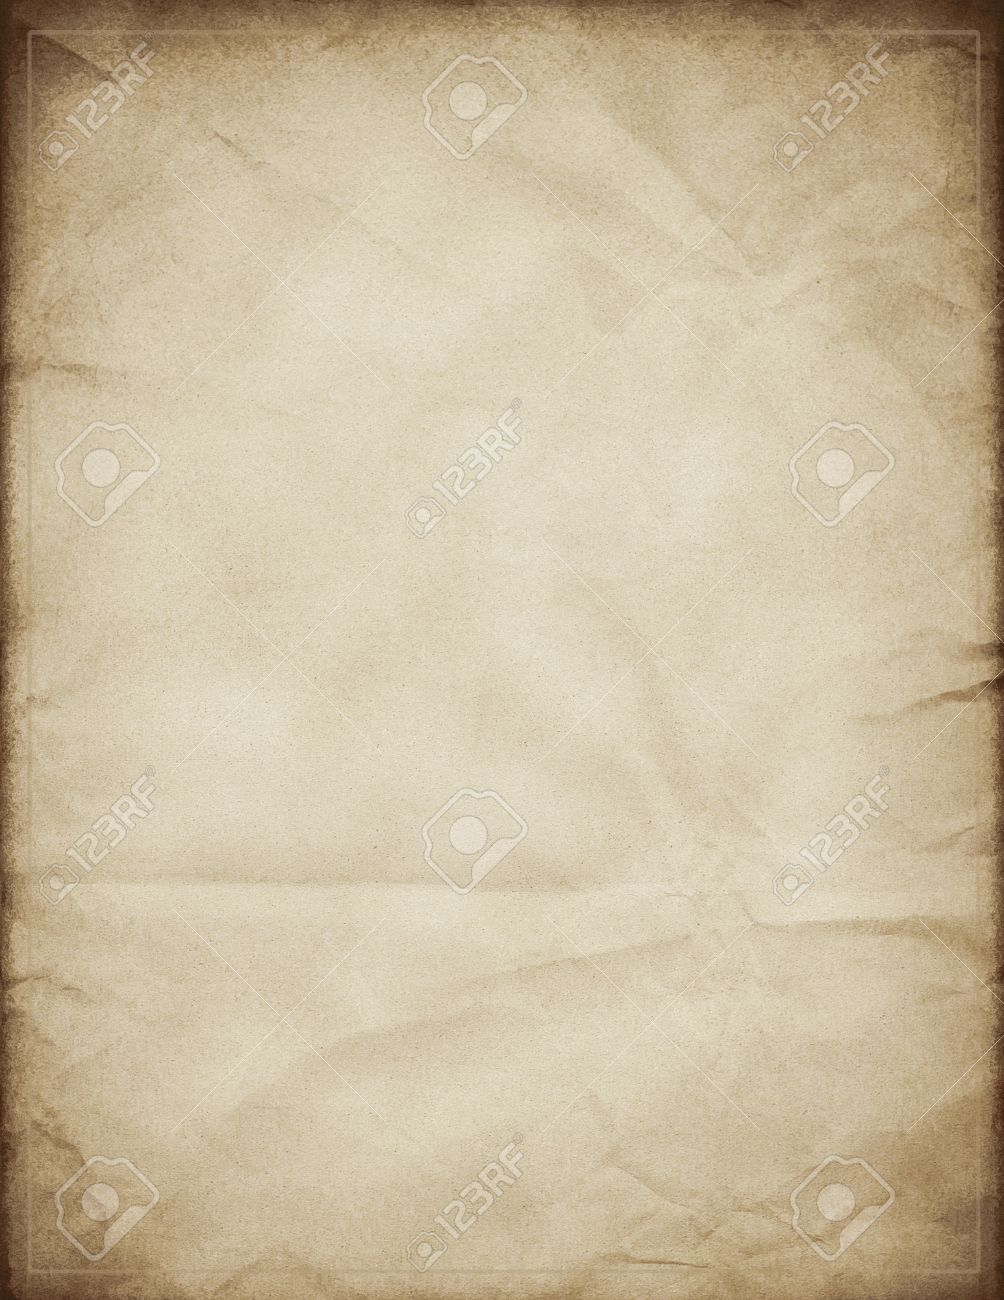 Old Paper Template Stock Photo, Picture And Royalty Free Image ...